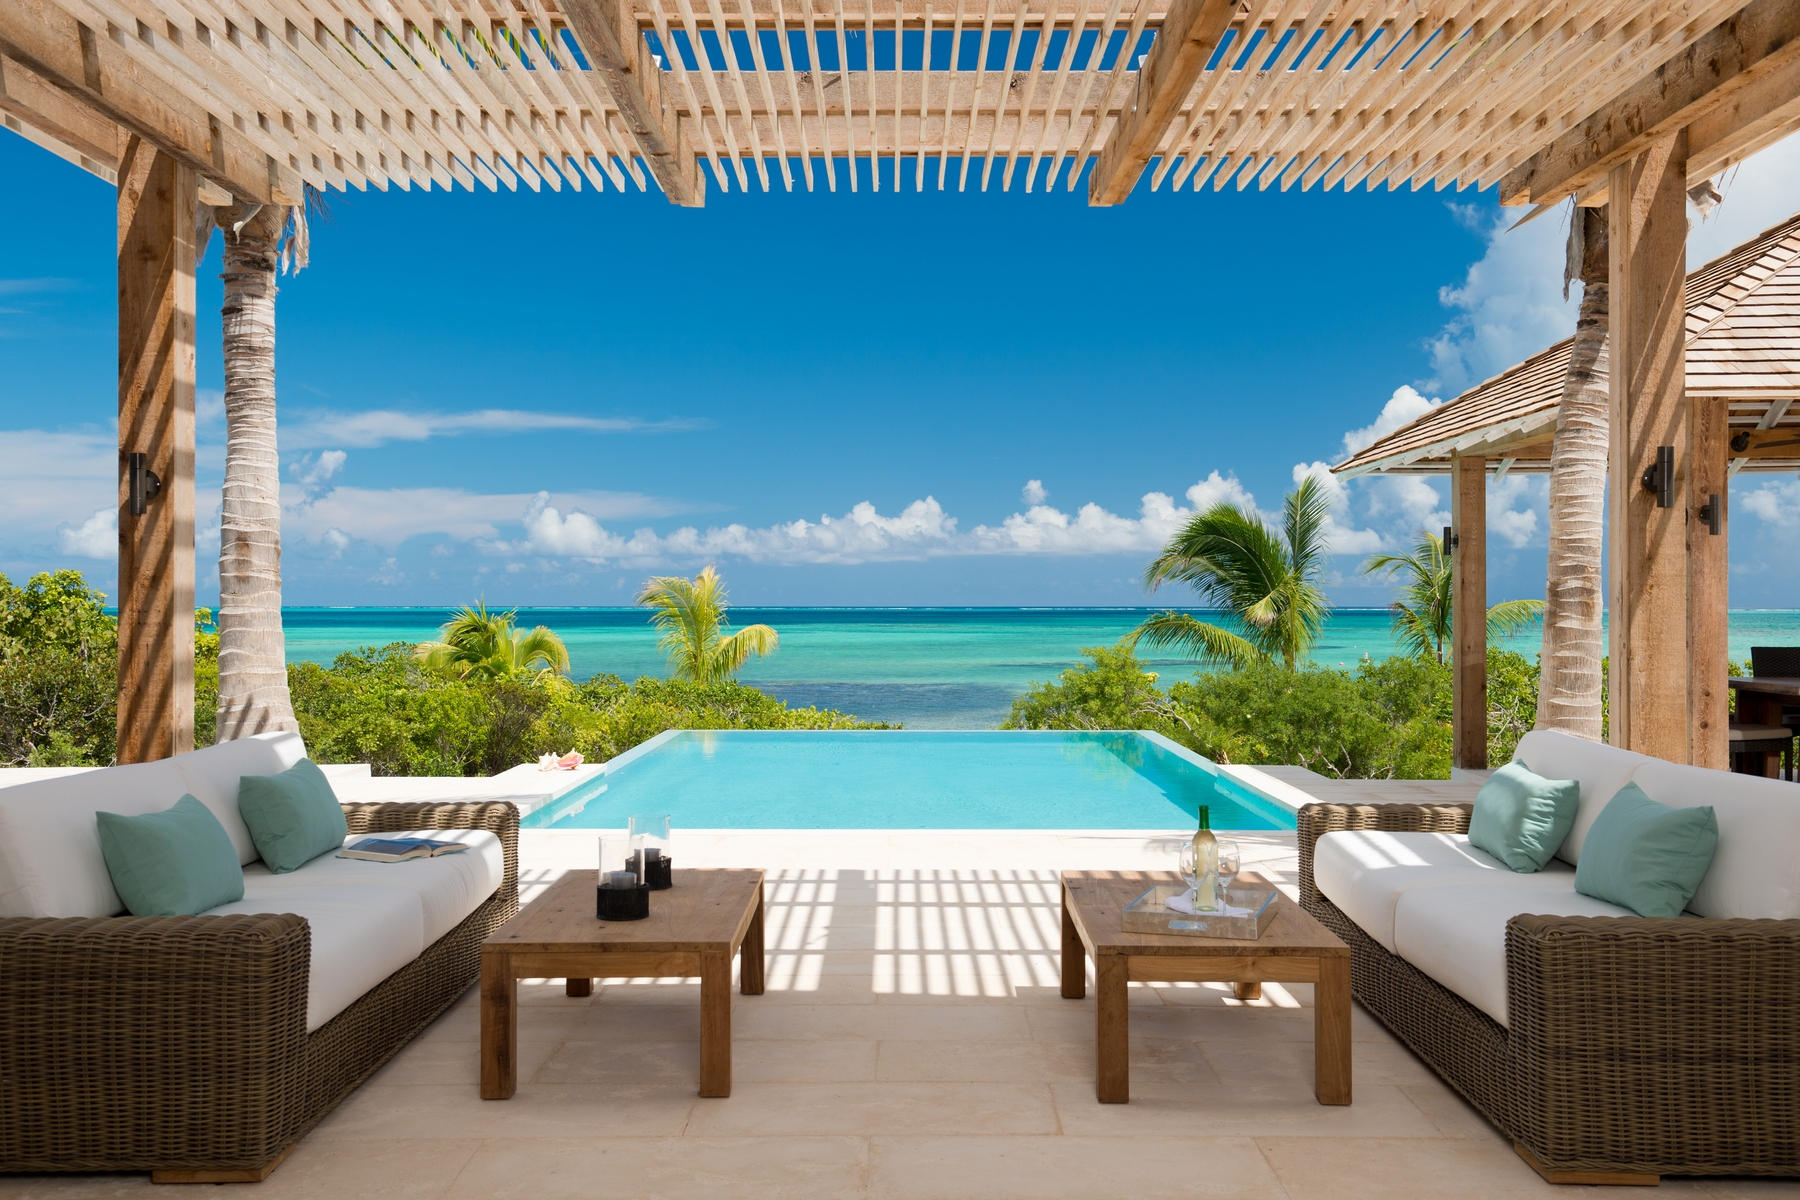 Single Family Home for Sale at Castaway Beachfront Thompson Cove, Providenciales TCI Turks And Caicos Islands